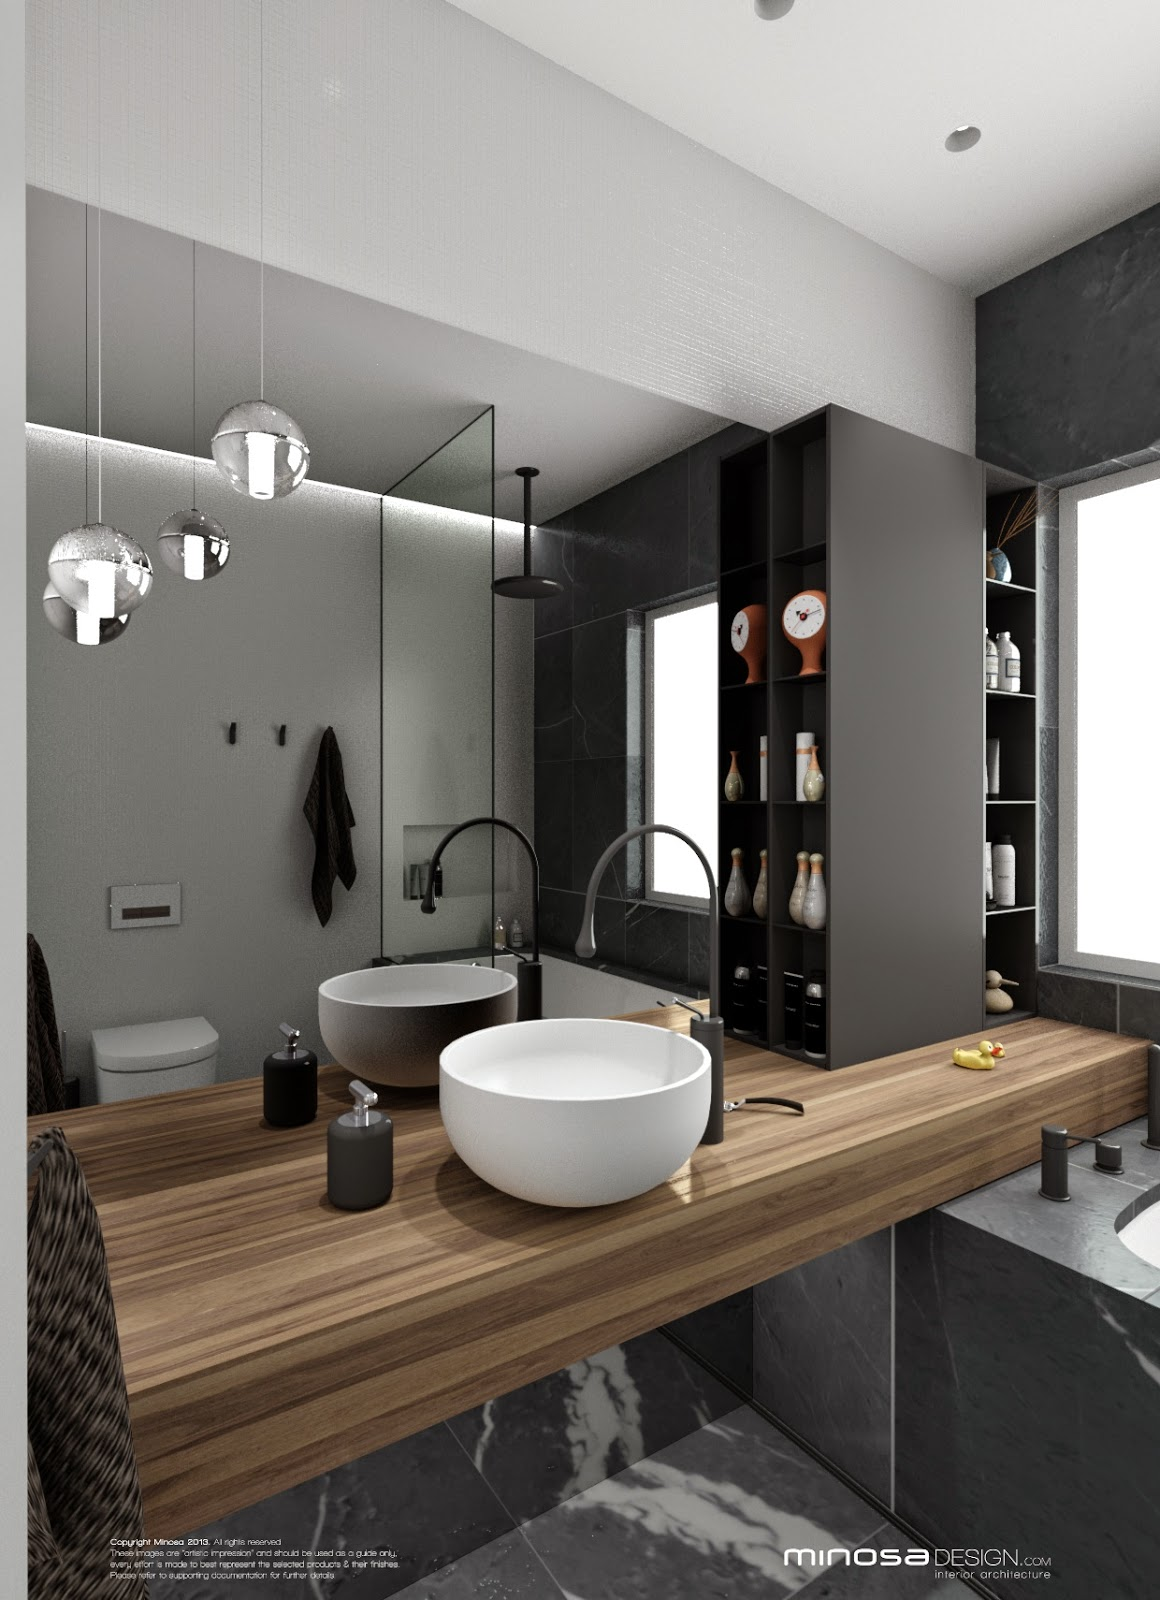 Minosa bathroom design small space feels large - Bathroom design ...